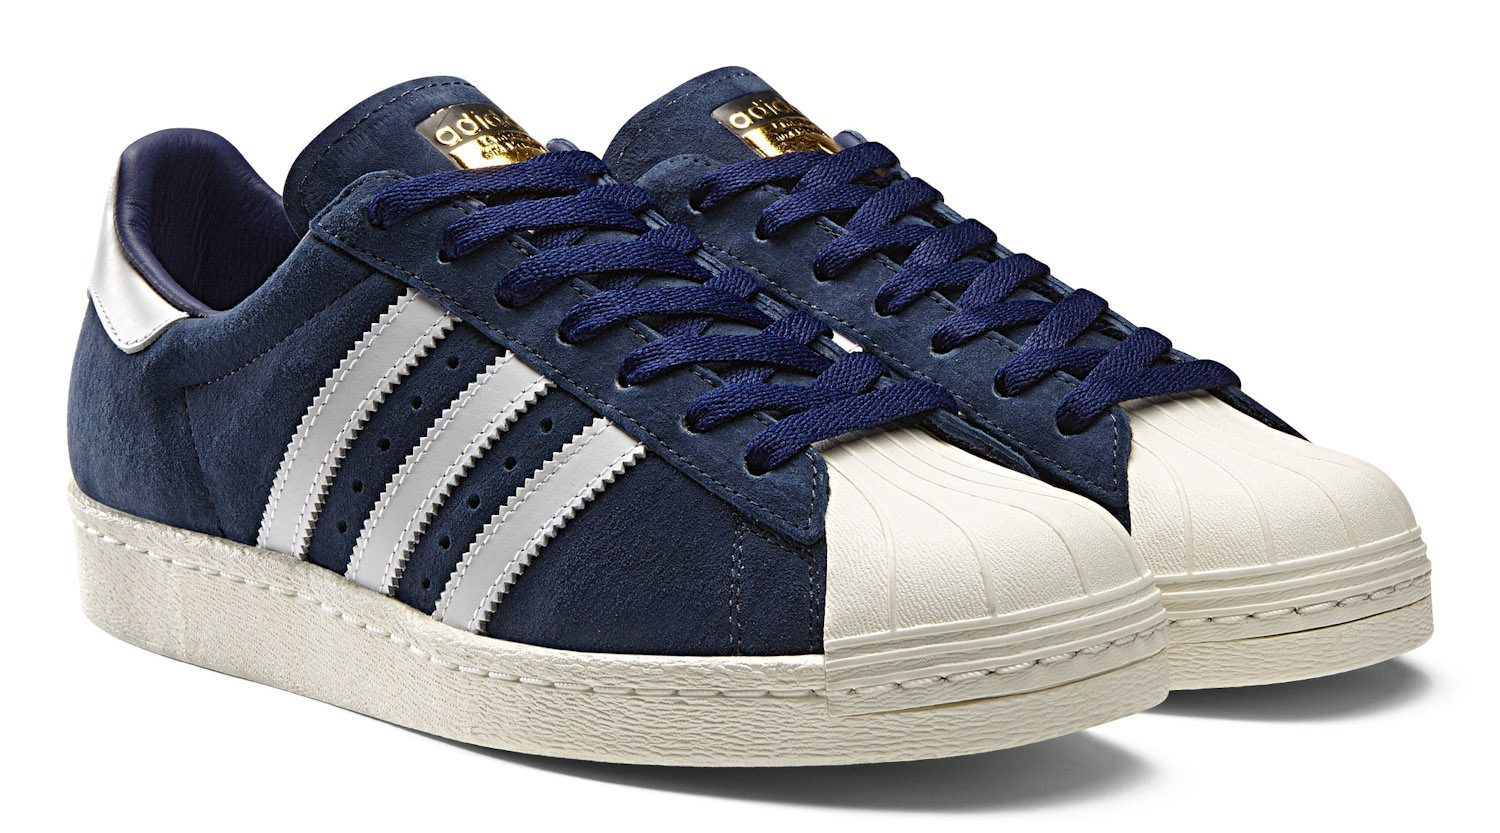 adidas Originals Superstar Suede Classics Pack 19